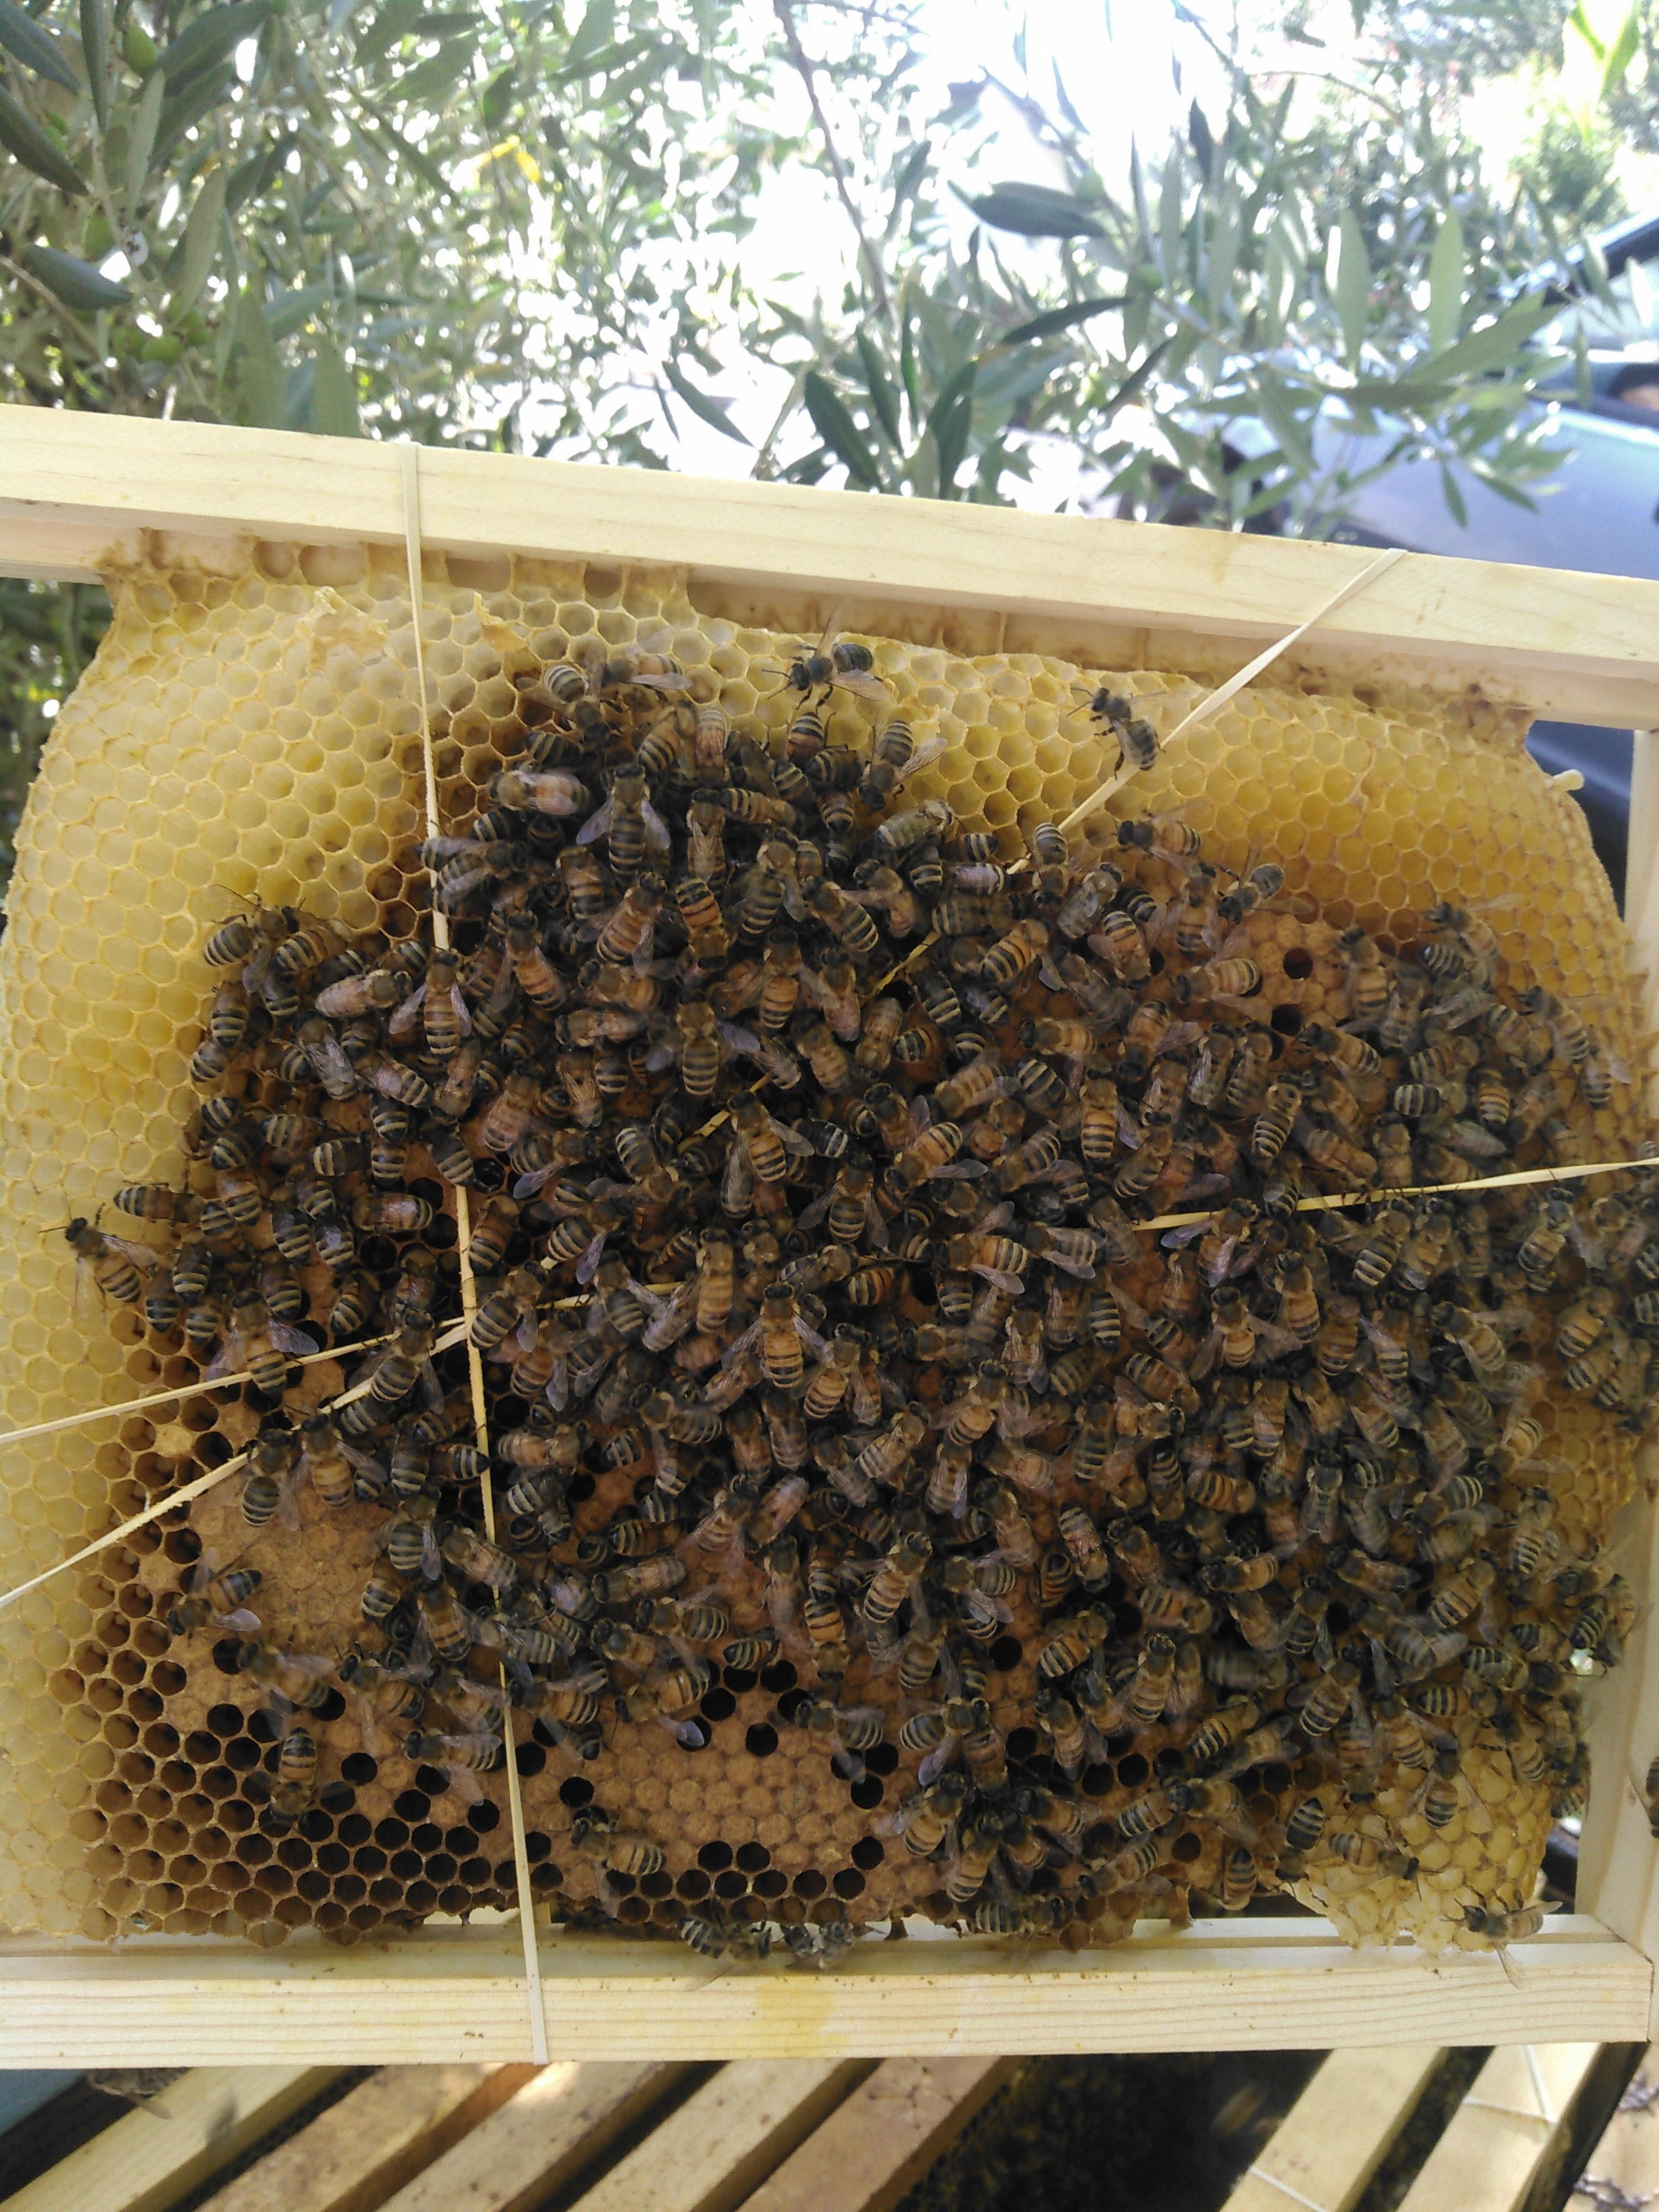 A few days later, the bees attach the comb to the frame. Soon the landing board will be littered with rubberband scraps